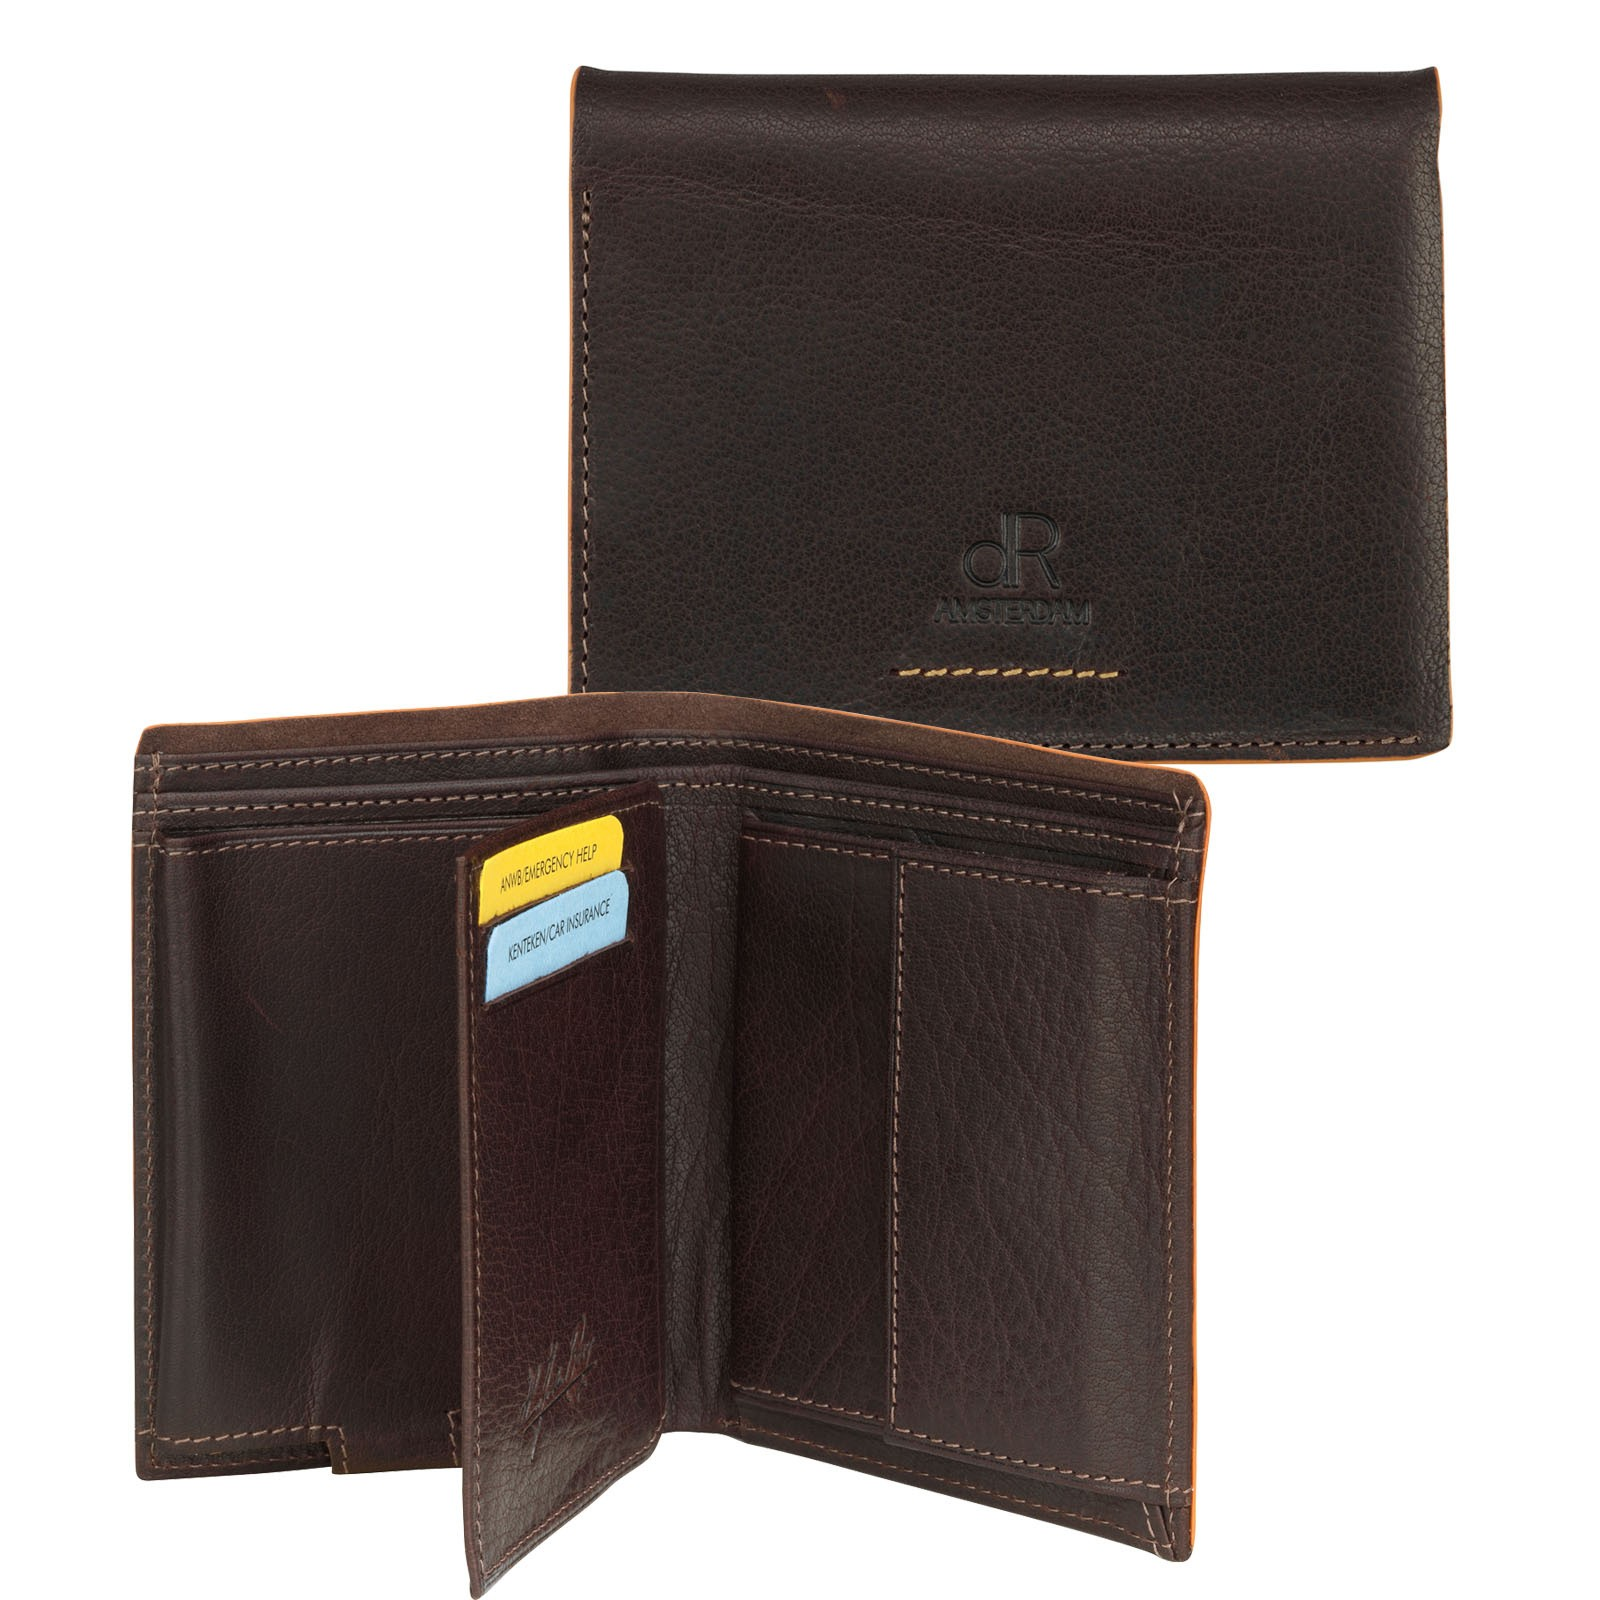 dR Amsterdam Wallet CC Comp 91513 Brown